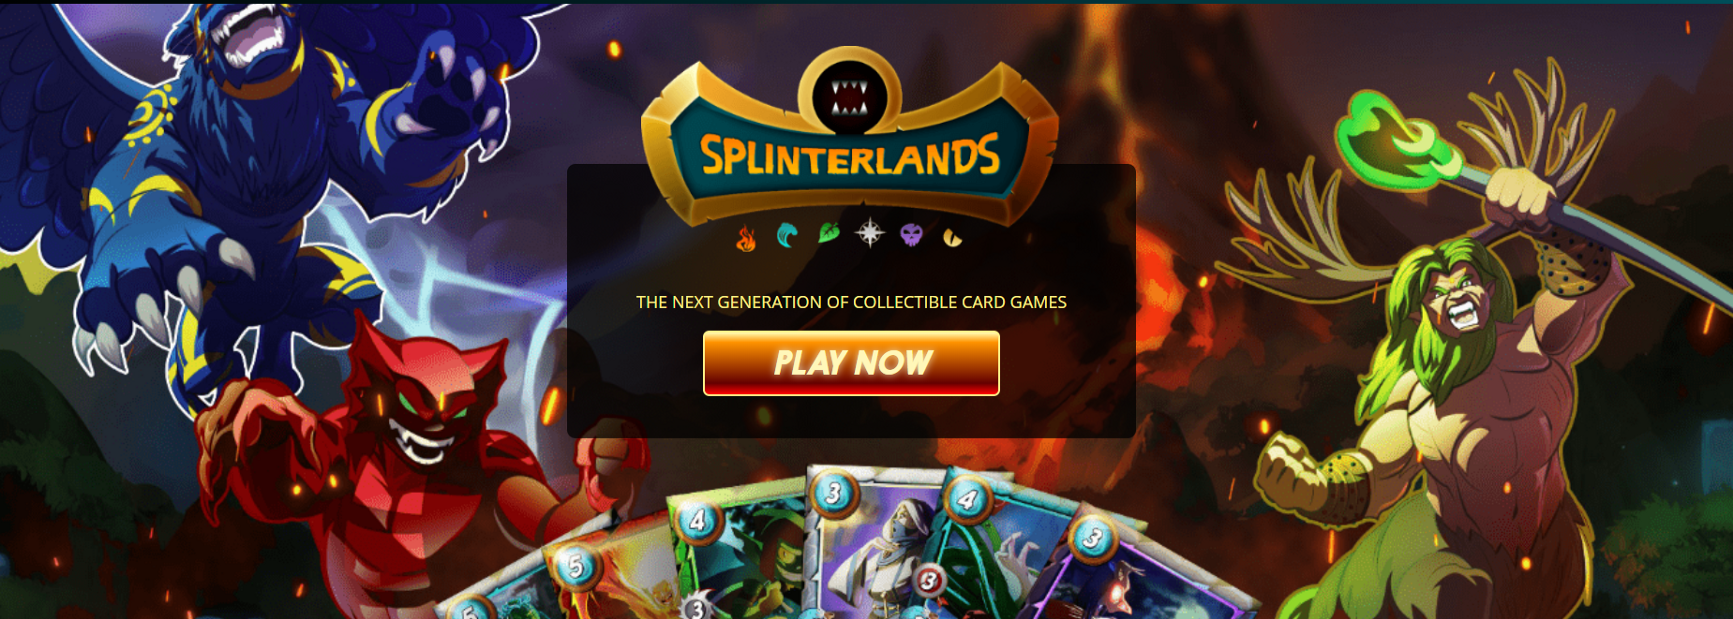 earn money in splinterlands